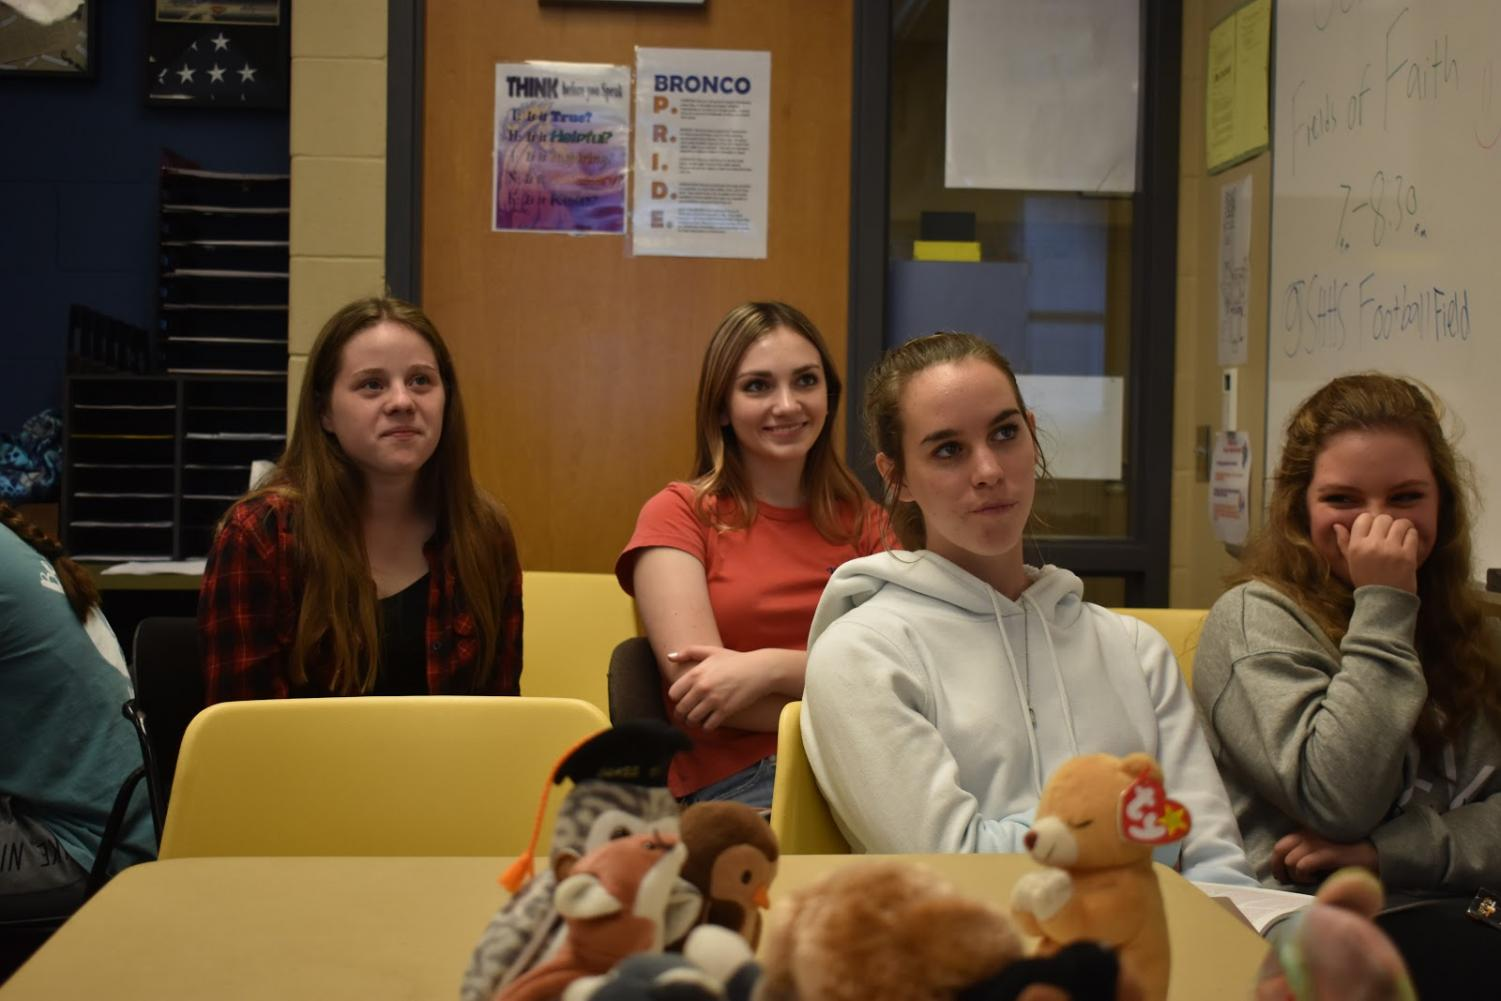 Gracie Campos, Ashley Carlisle, Porscha Stocker, and Kyra Fuchs, 9, all laugh while listening to Paul Young's, History teacher, lesson on Sept. 25.